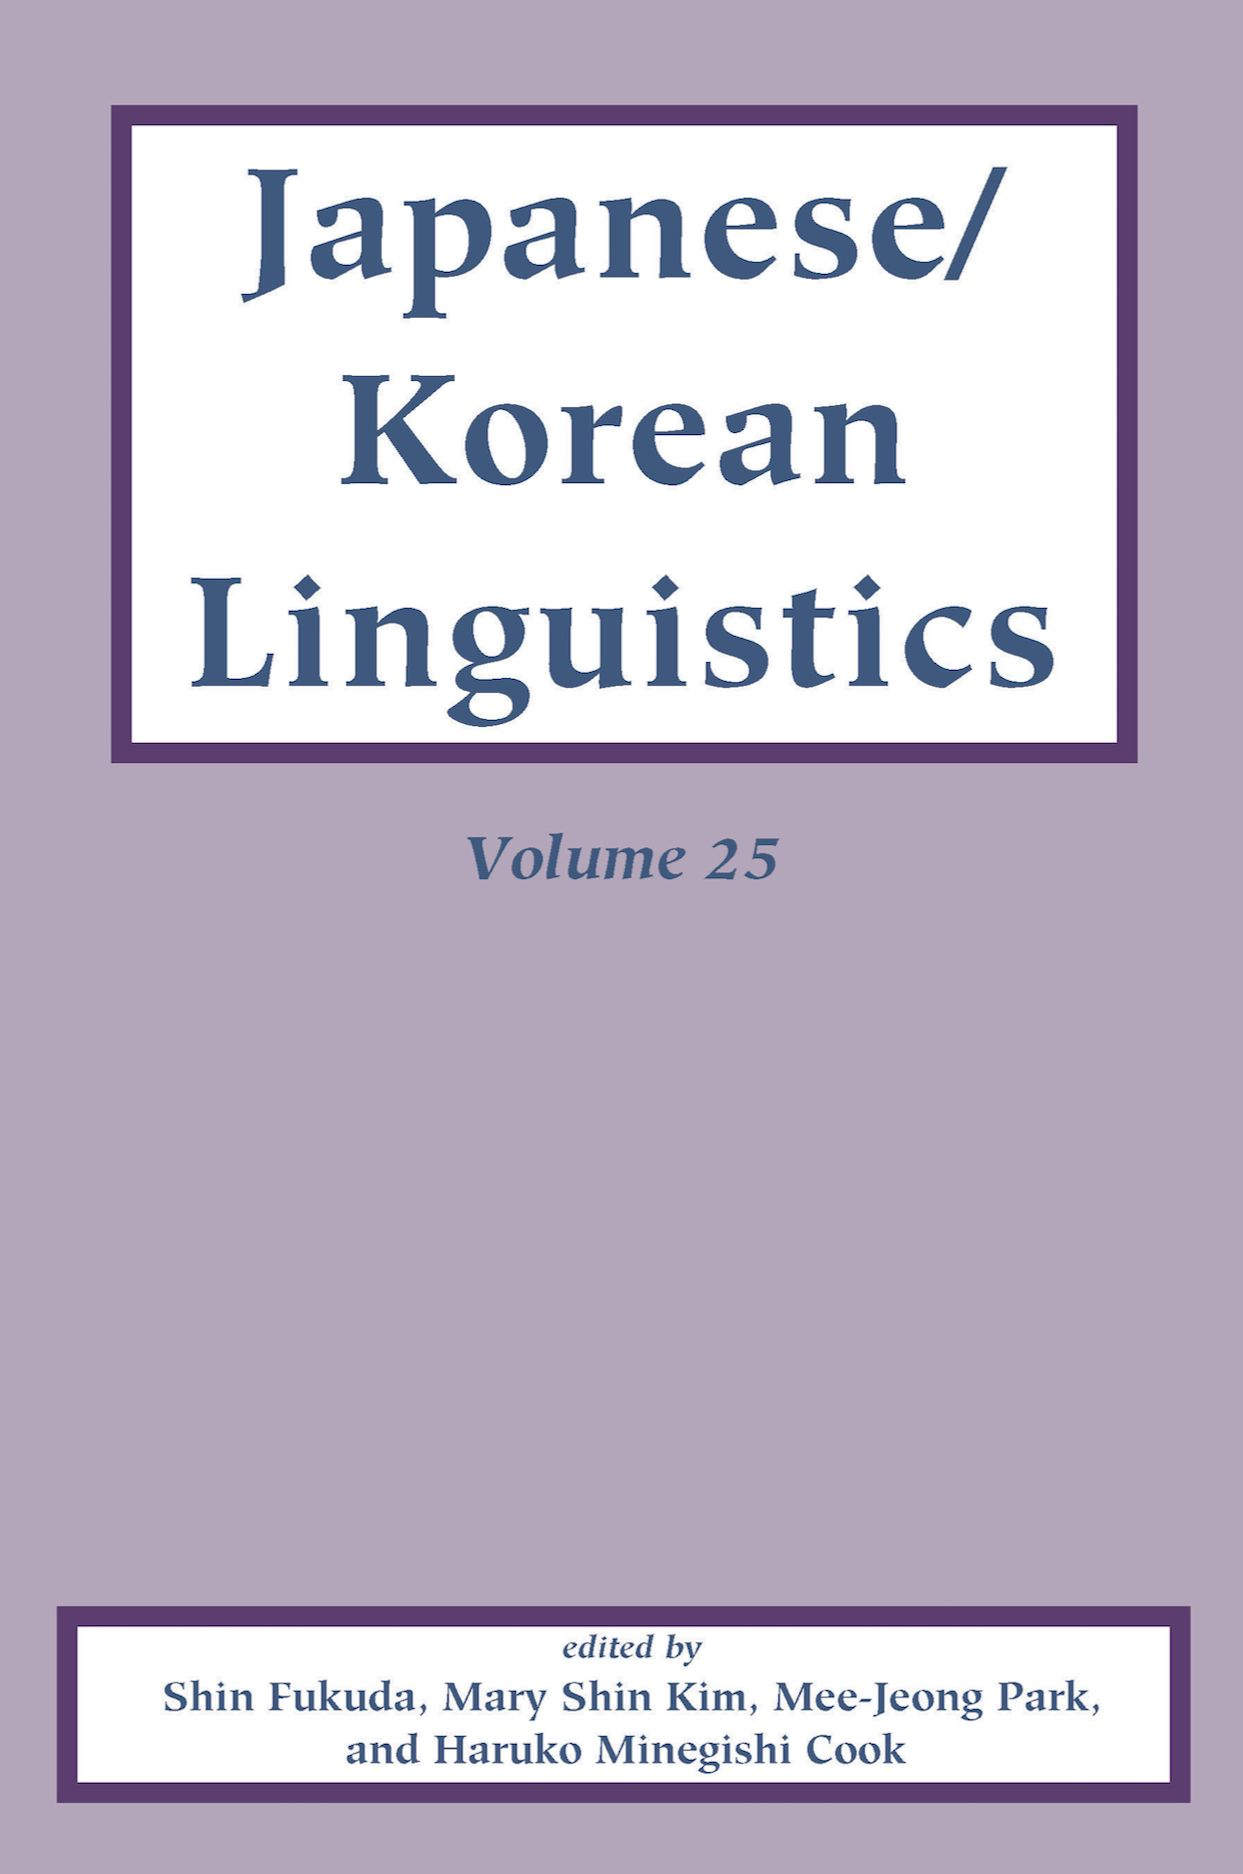 Japanese/Korean Linguistics, Volume 25